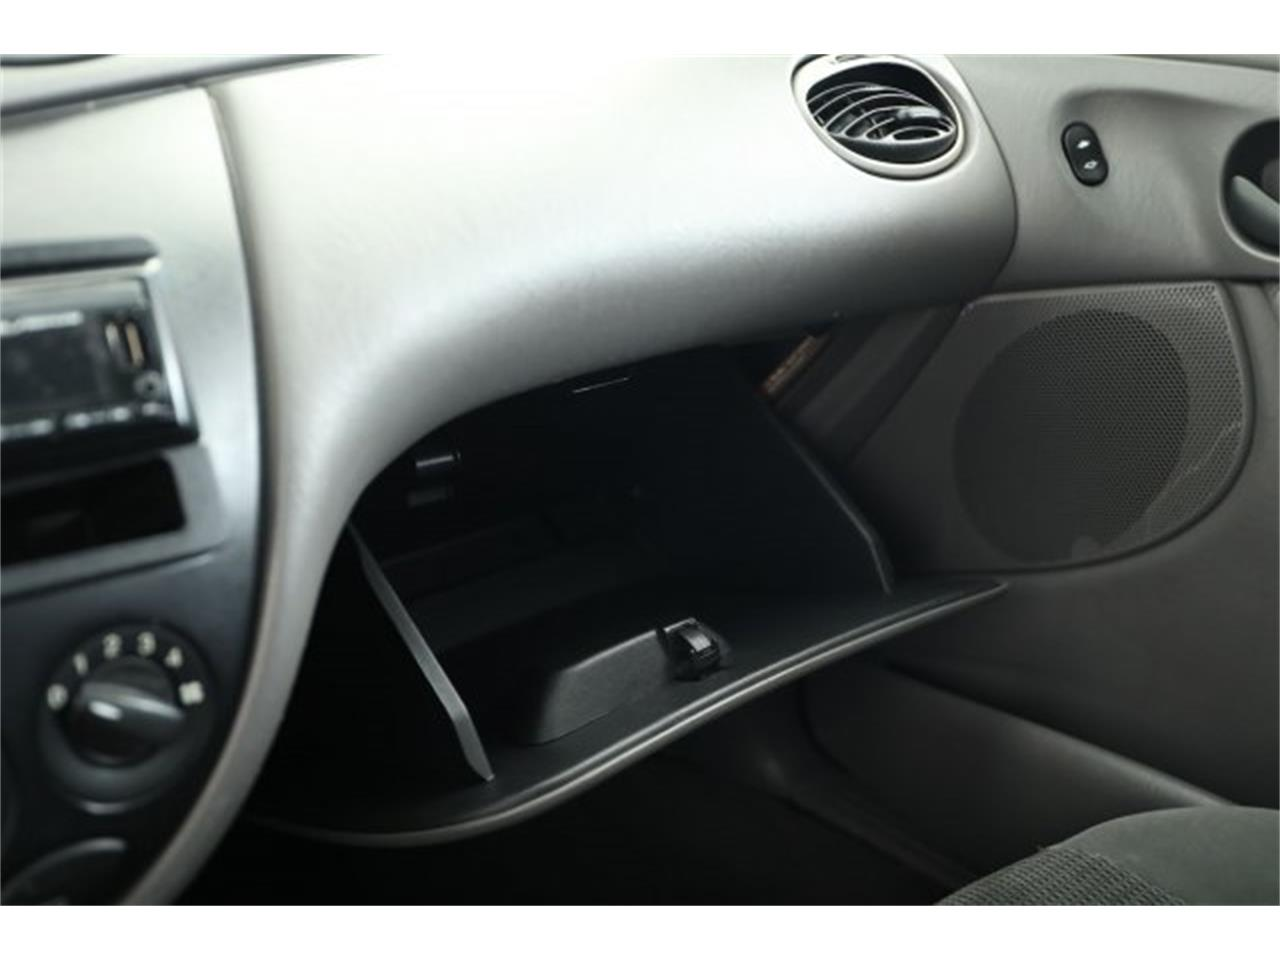 Large Picture of 2003 Ford Focus located in Washington - $4,995.00 - LMHH